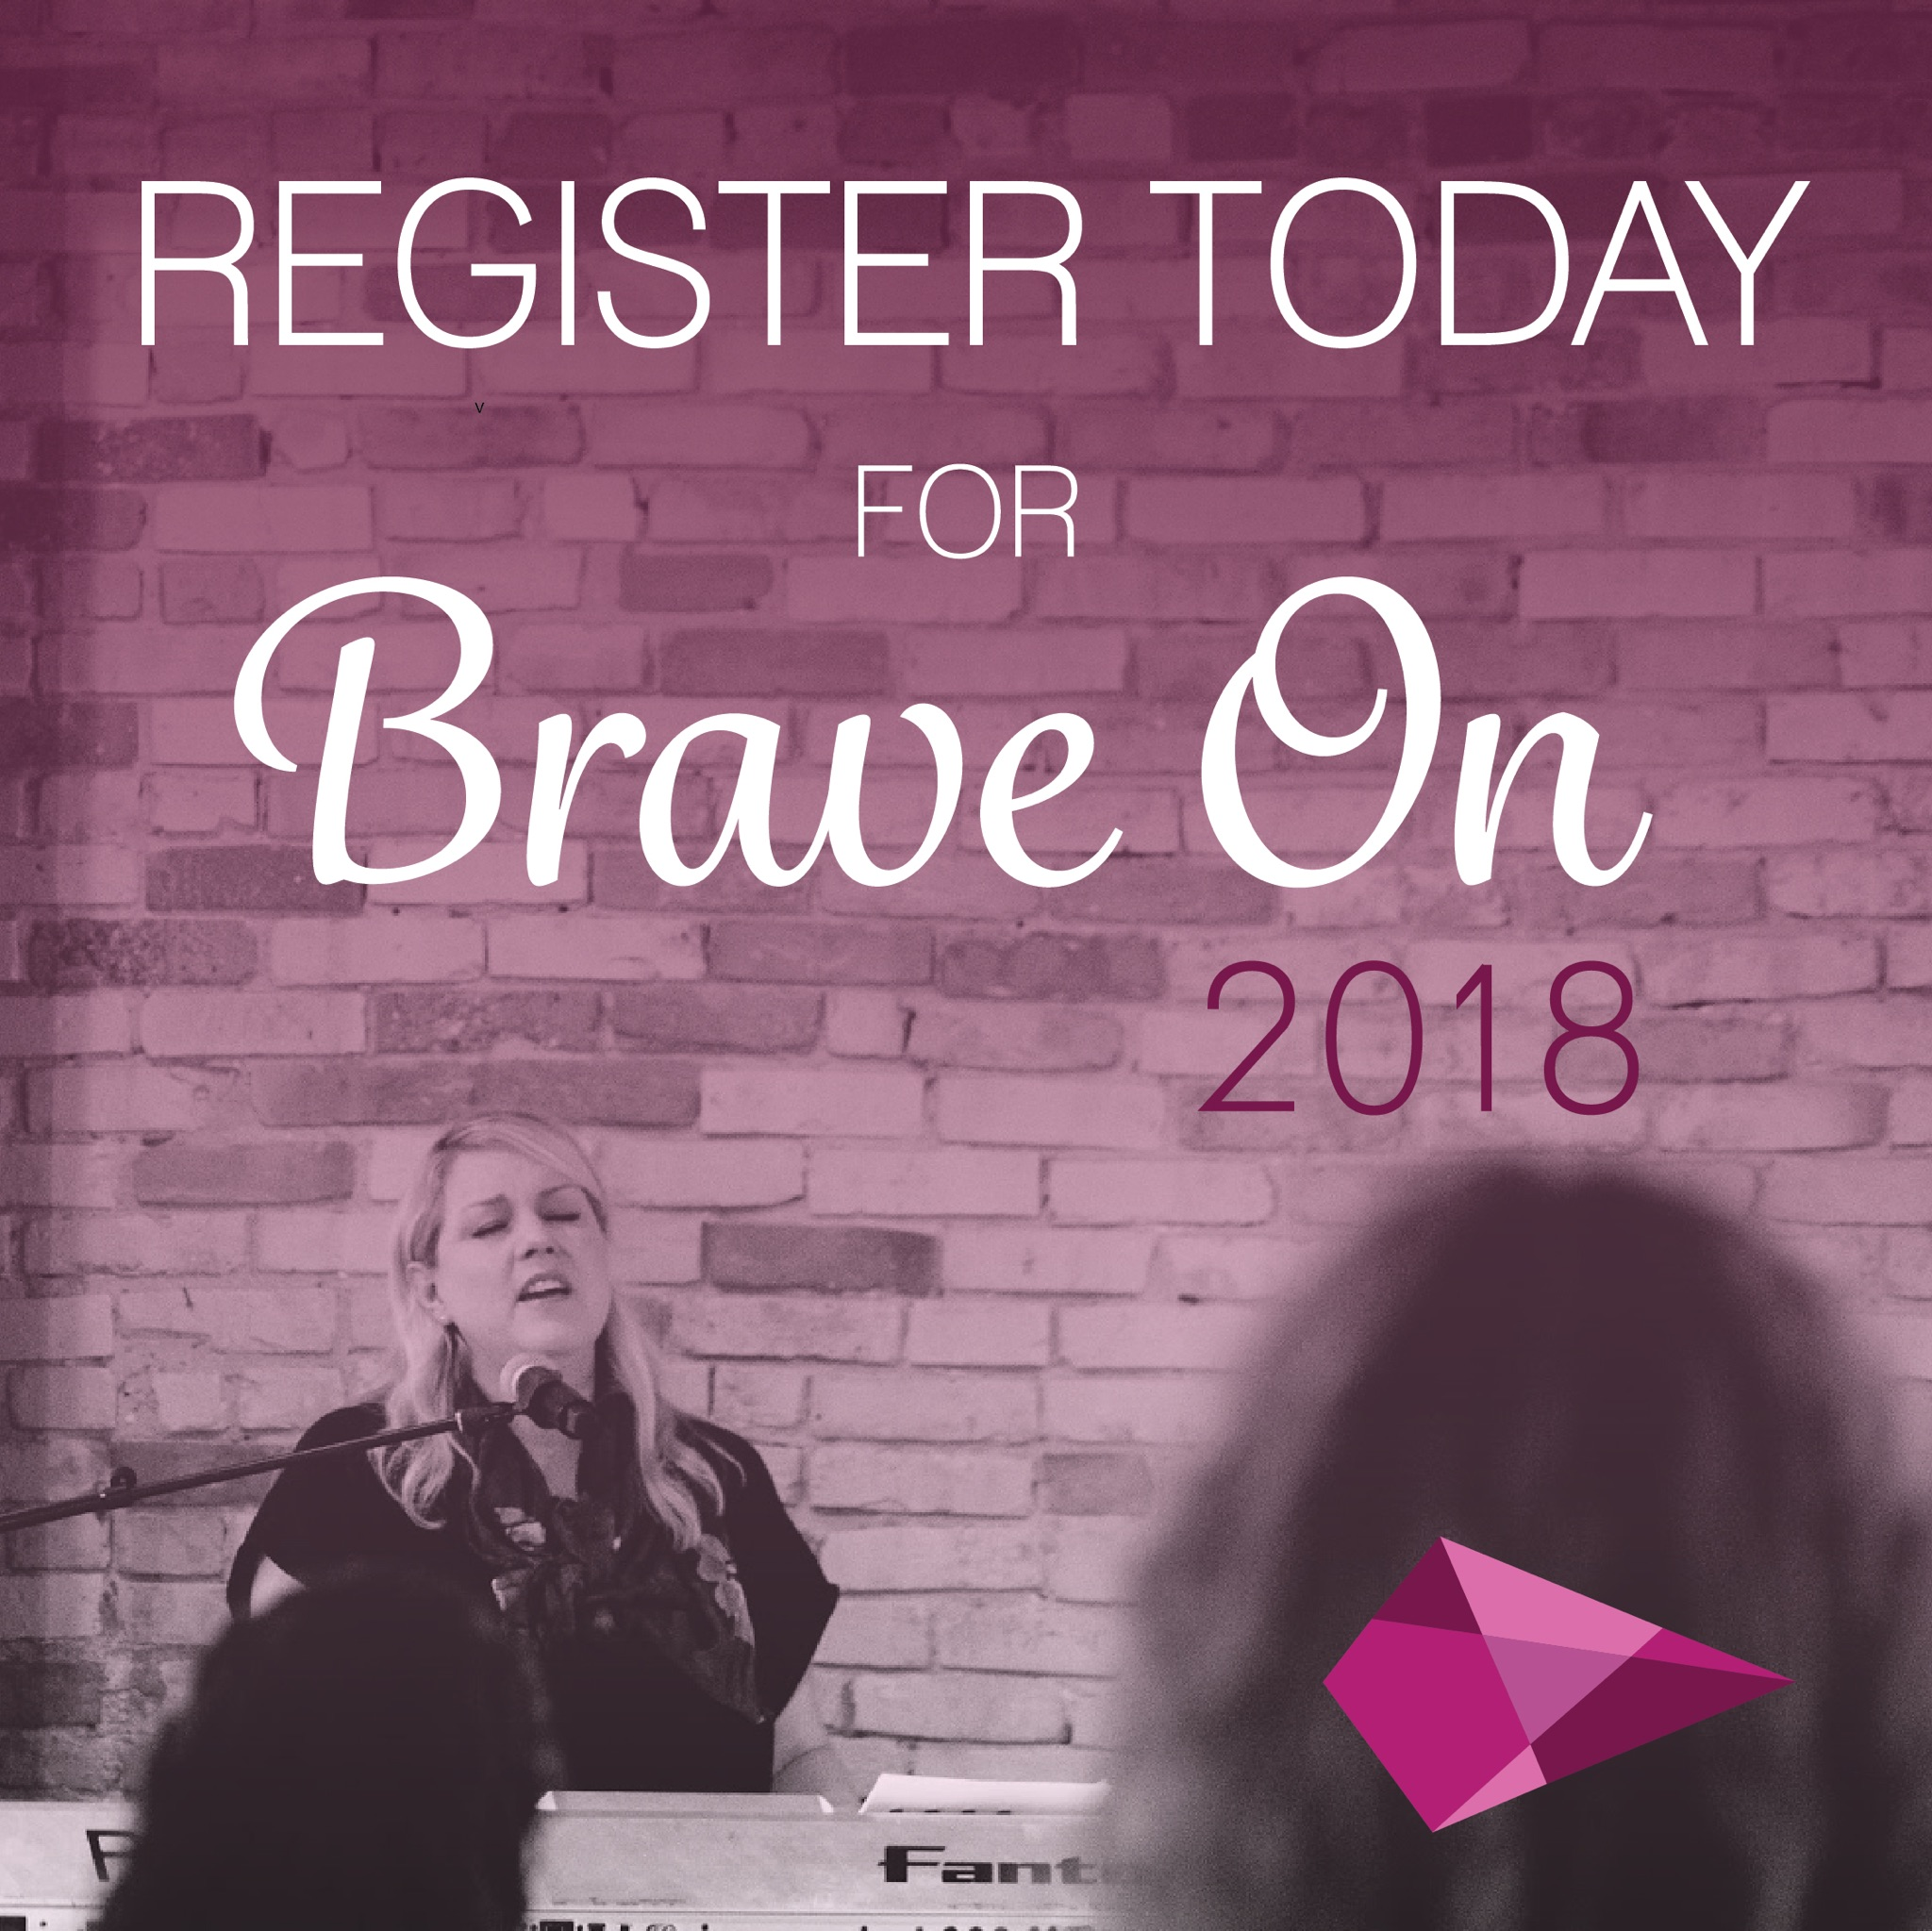 Register Today for Brave On 2018